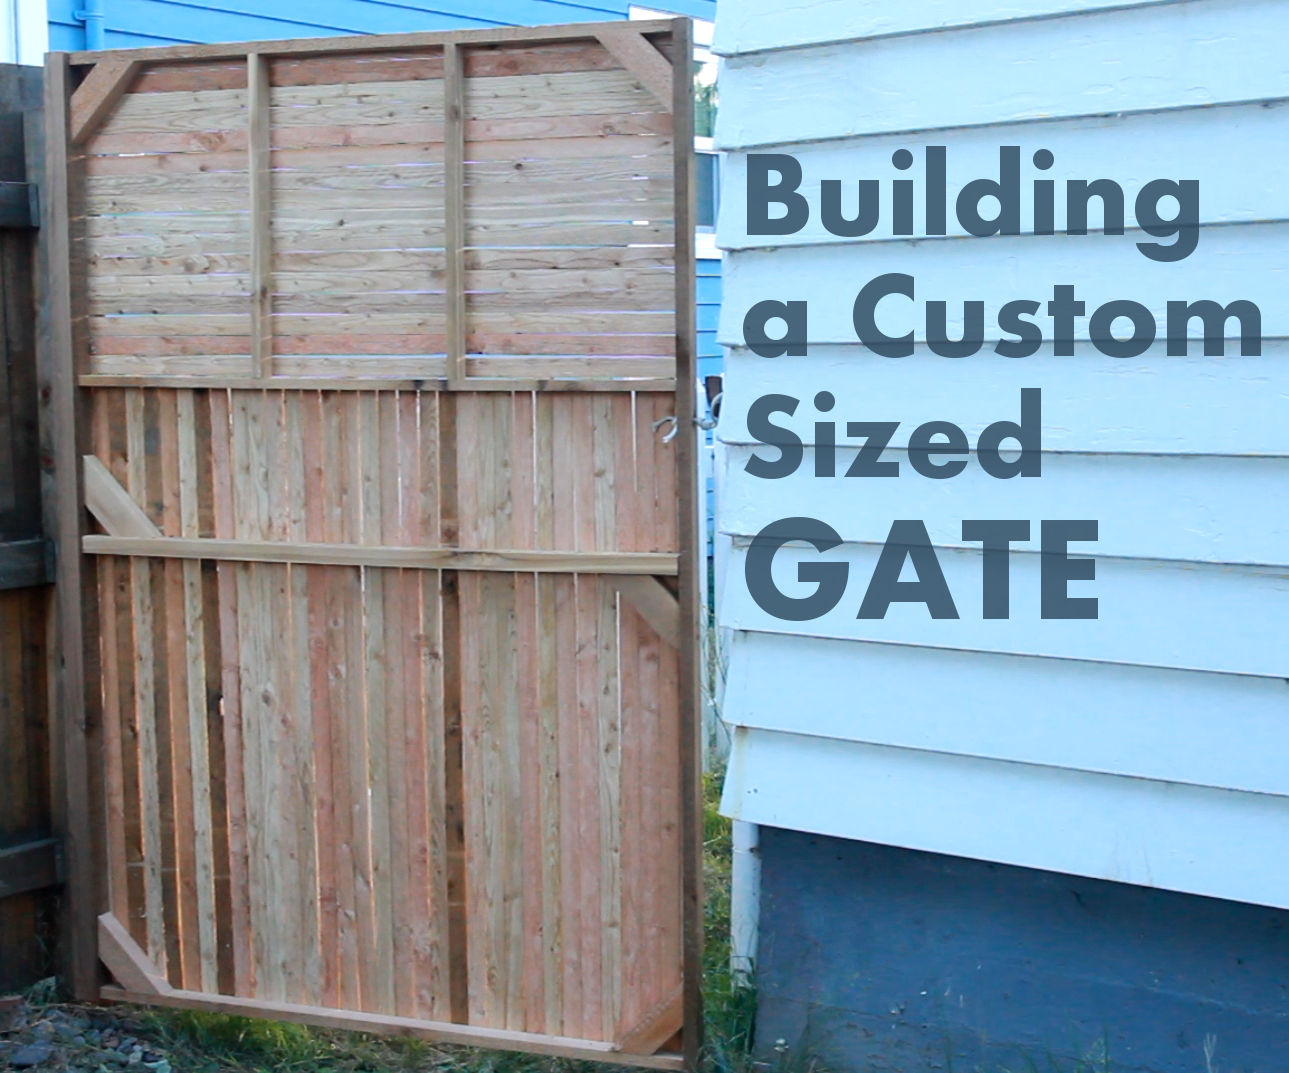 How To Build a Custom Sized Gate